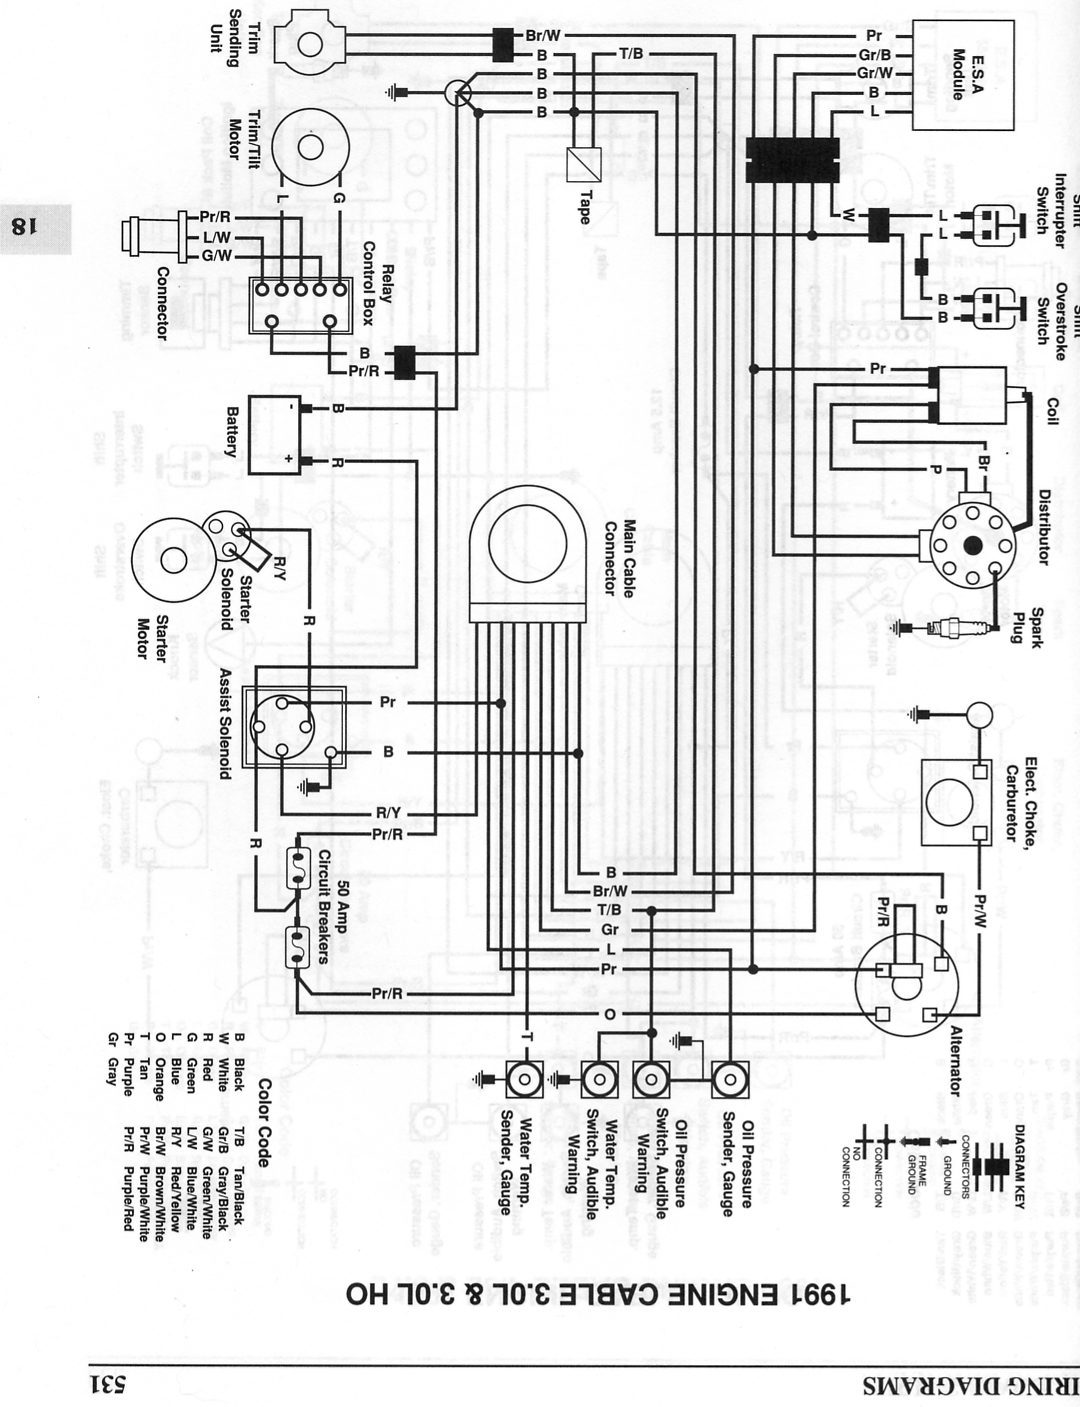 1989 Omc Cobra Wiring Diagram